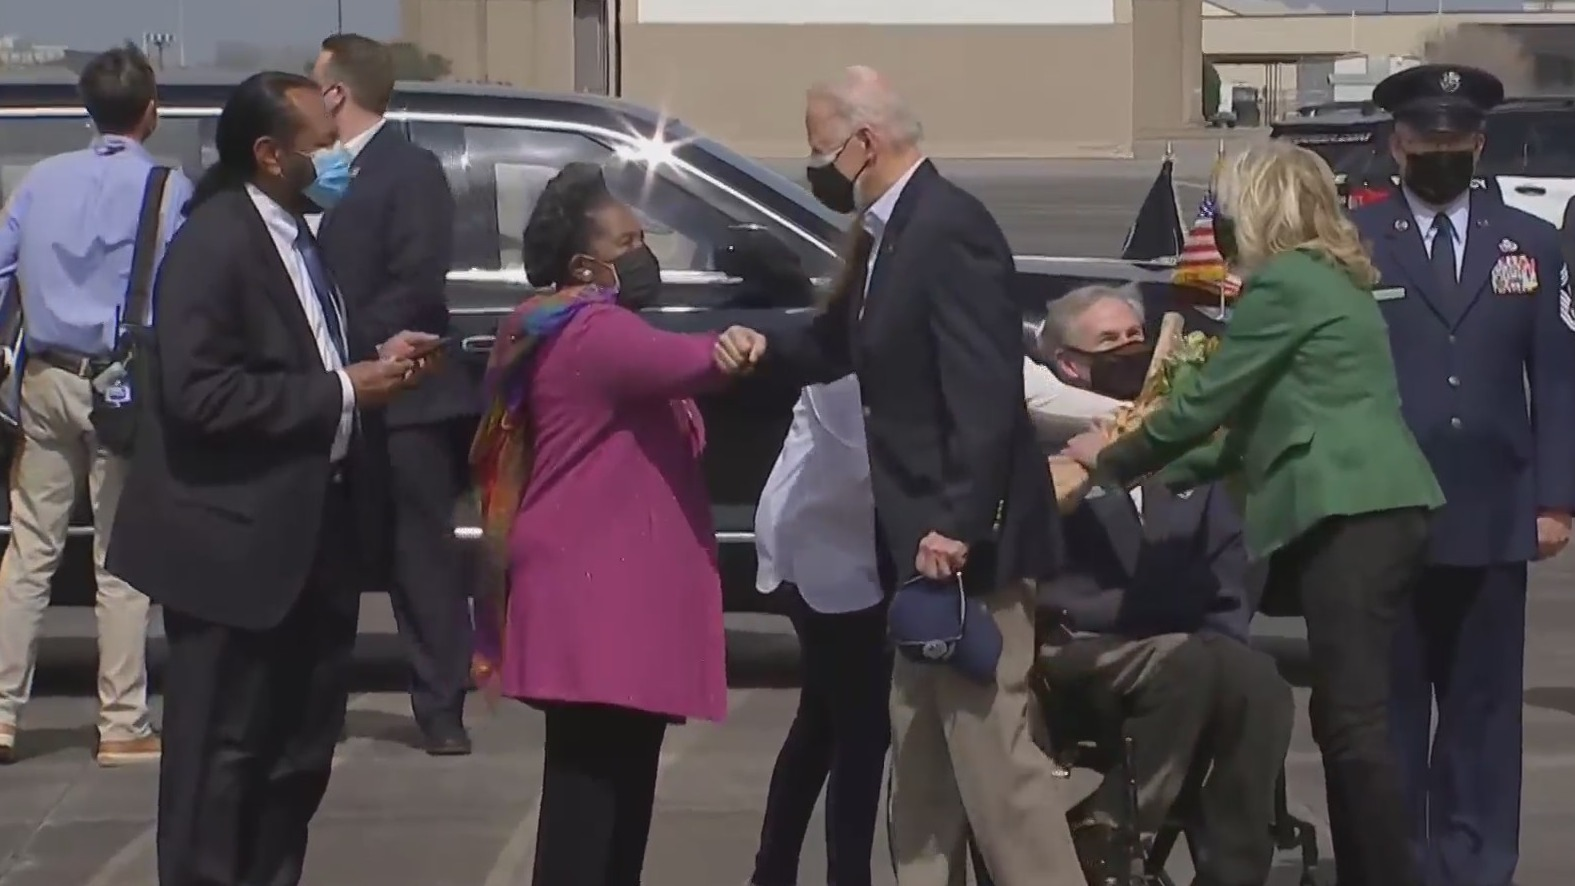 Rep. Sheila Jackson-Lee greets President Joe Biden after he lands in Houston Feb. 26, 2021 (Pool Photo)